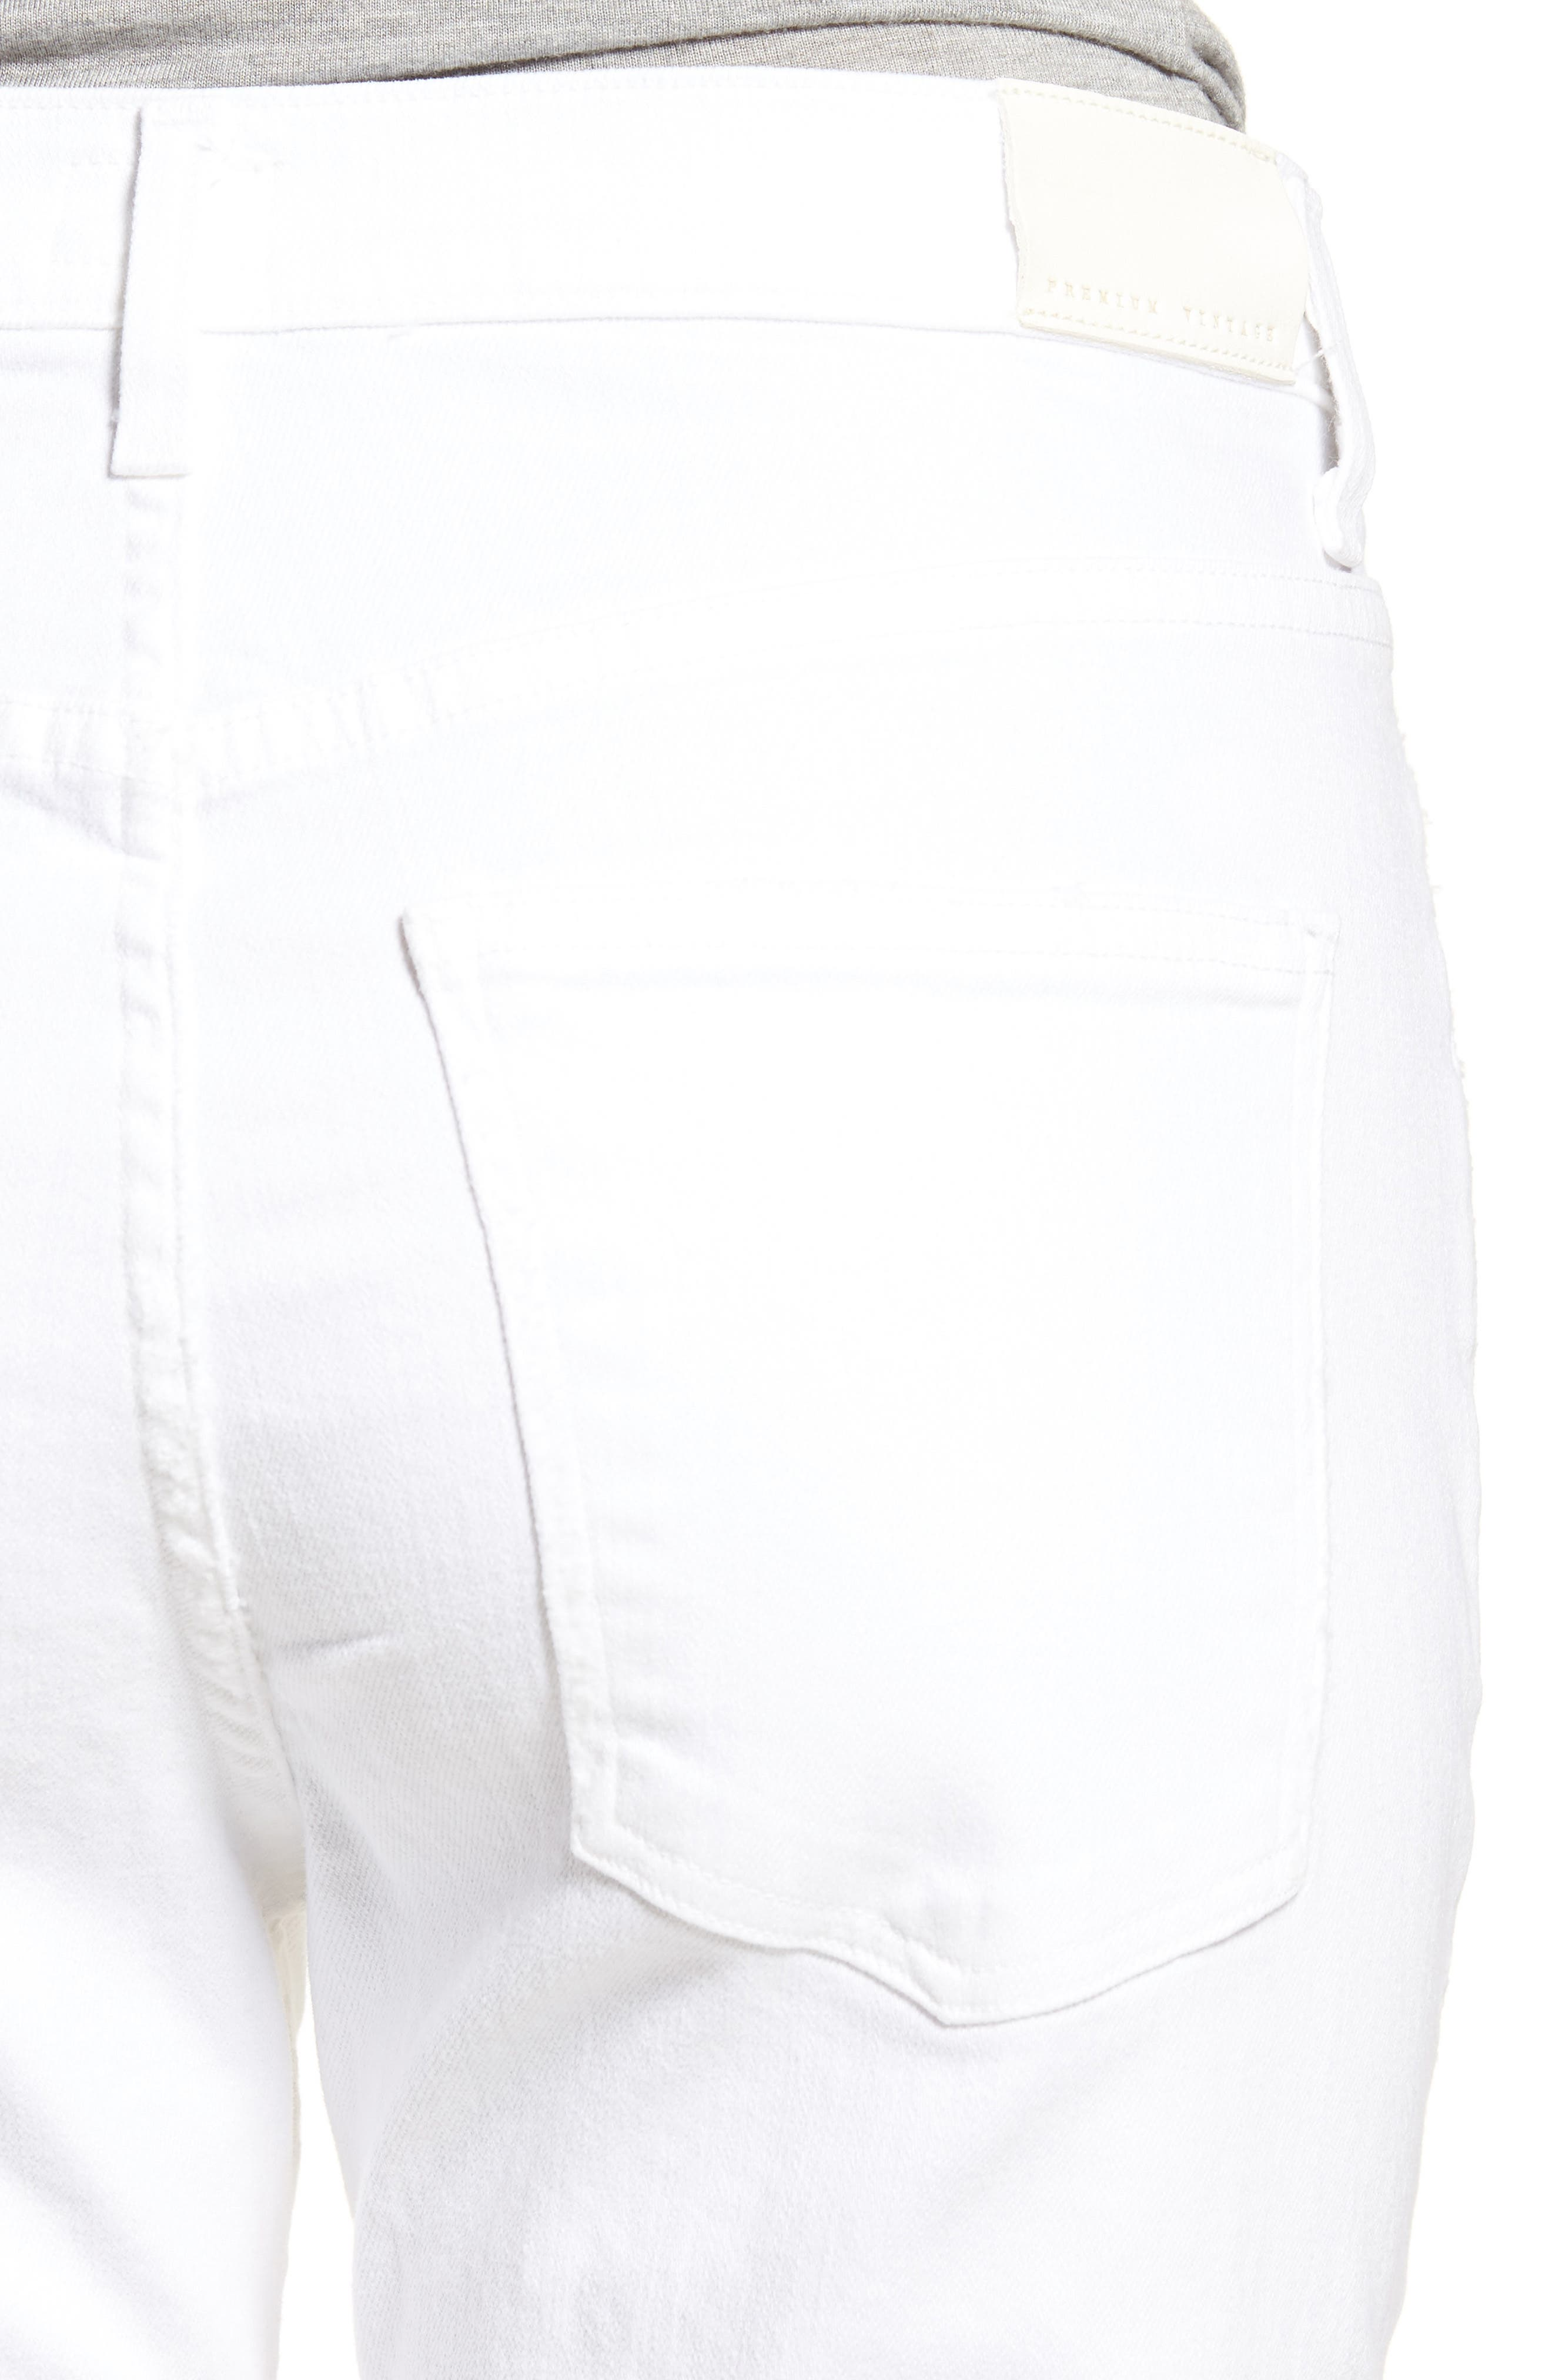 CITIZENS OF HUMANITY, Drew Crop Flare Jeans, Alternate thumbnail 4, color, DISTRESSED WHITE